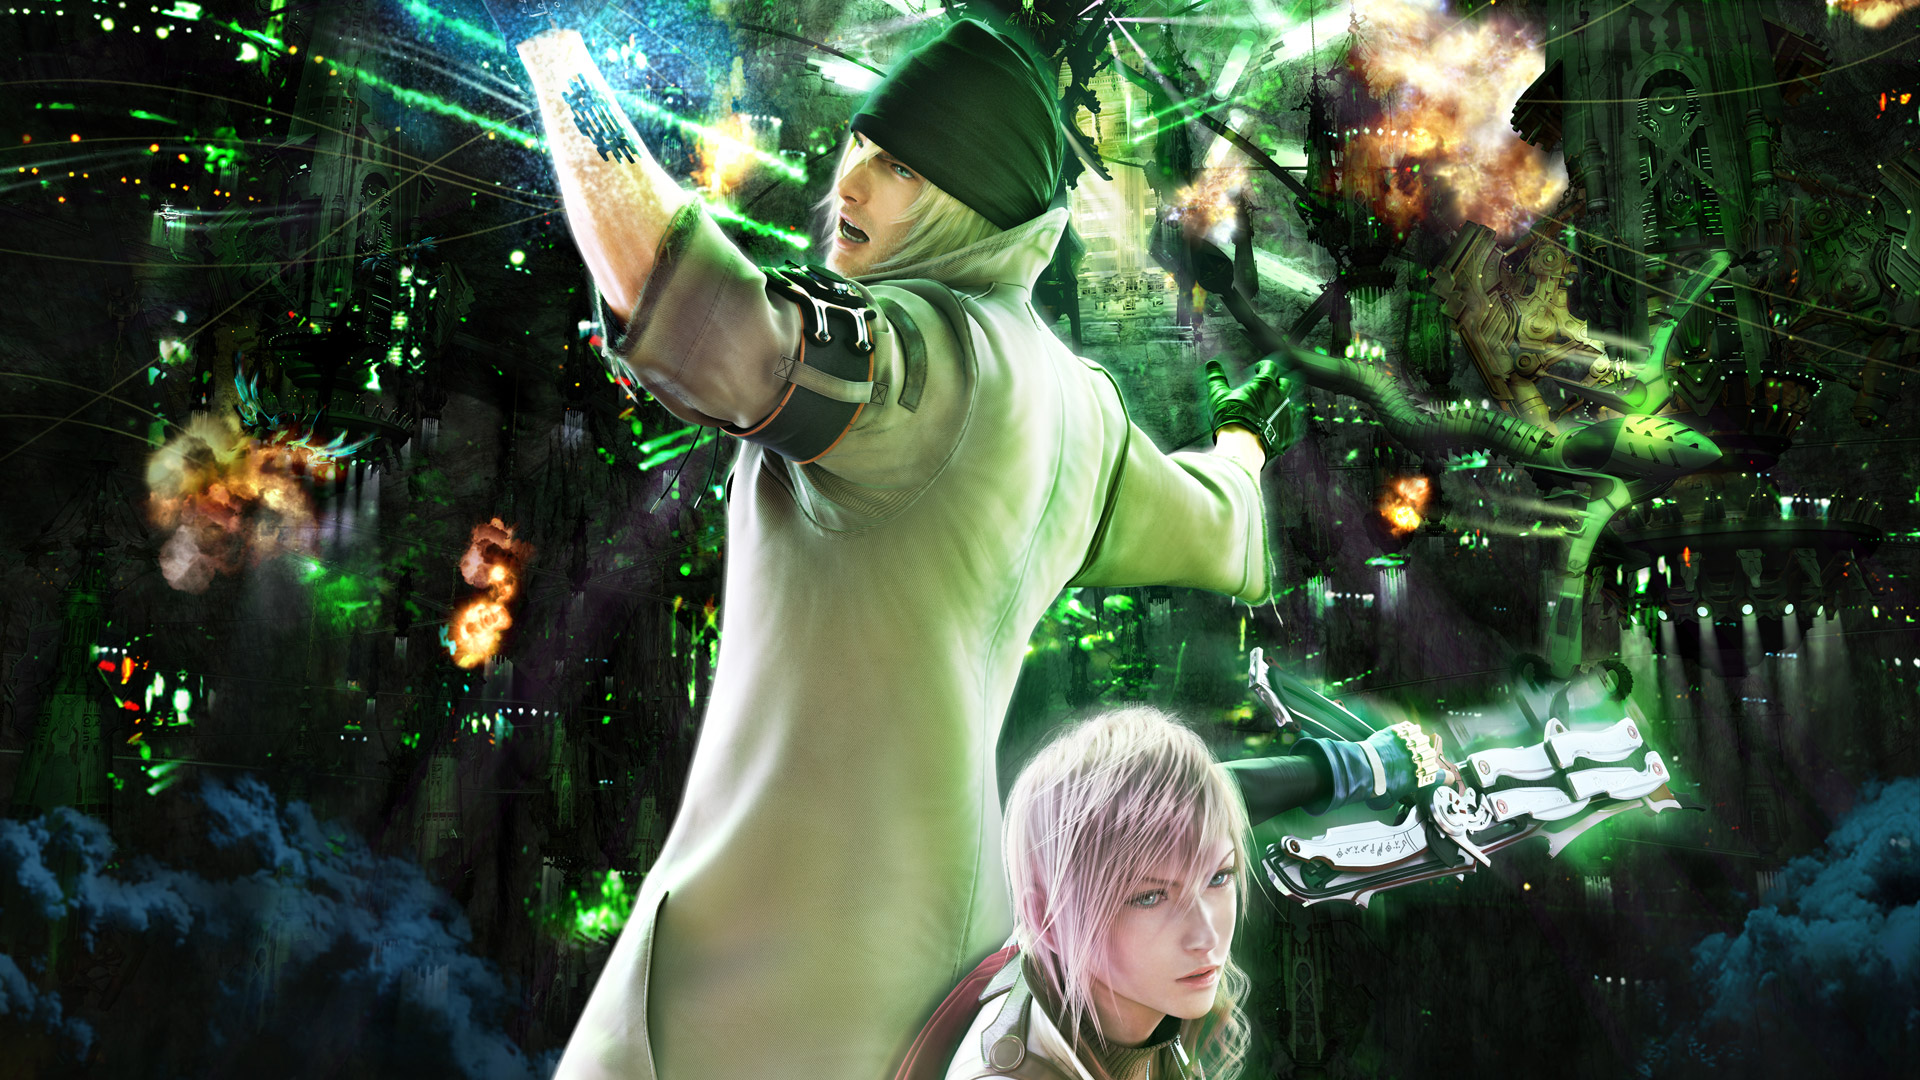 Final Fantasy XIII Wallpaper in 1920x1080